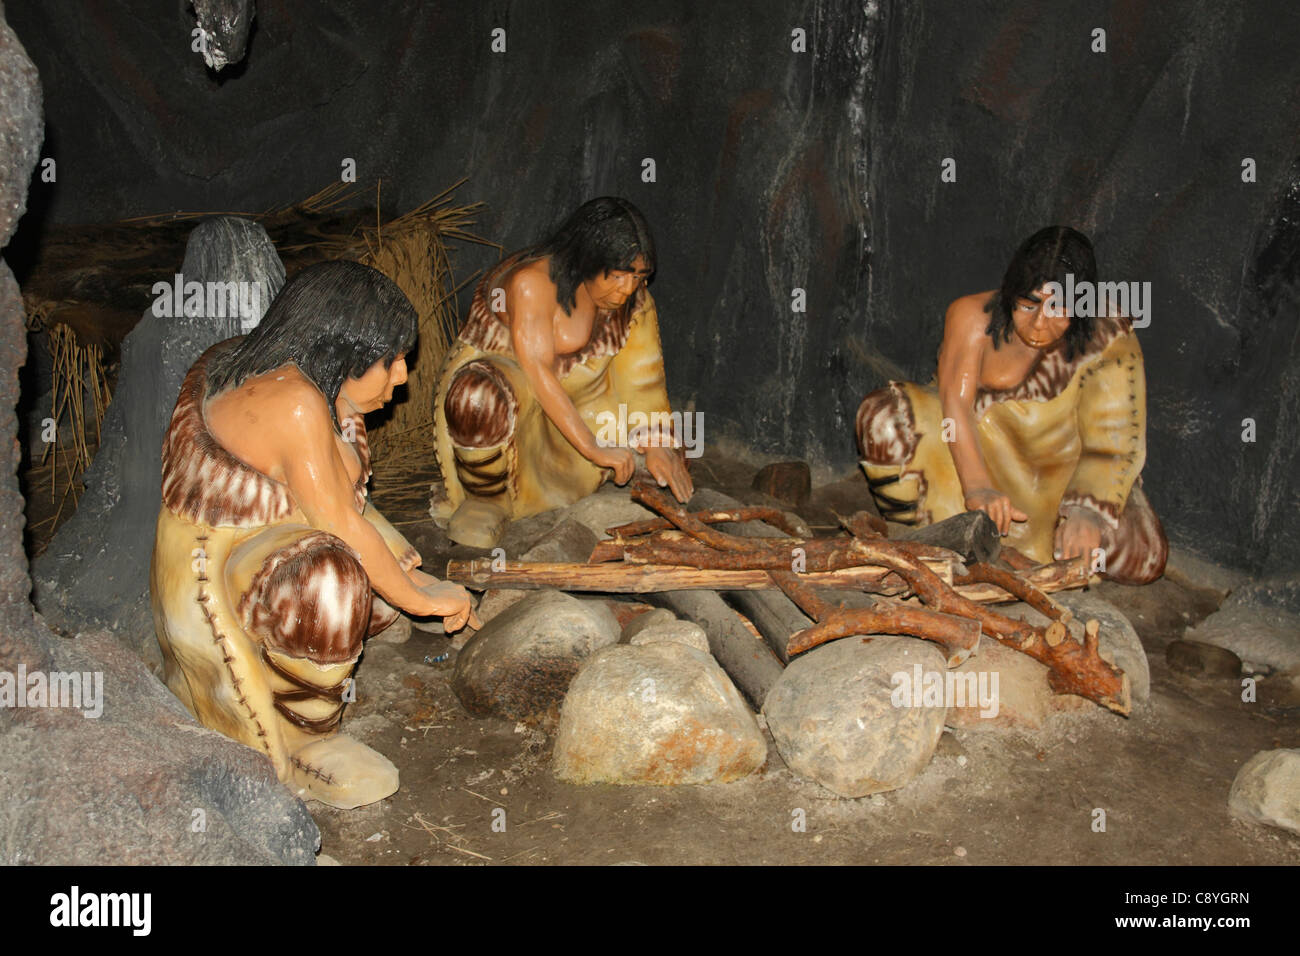 Neanderthal people sitting at the fire in a cave, Leba ...  Neanderthal peo...